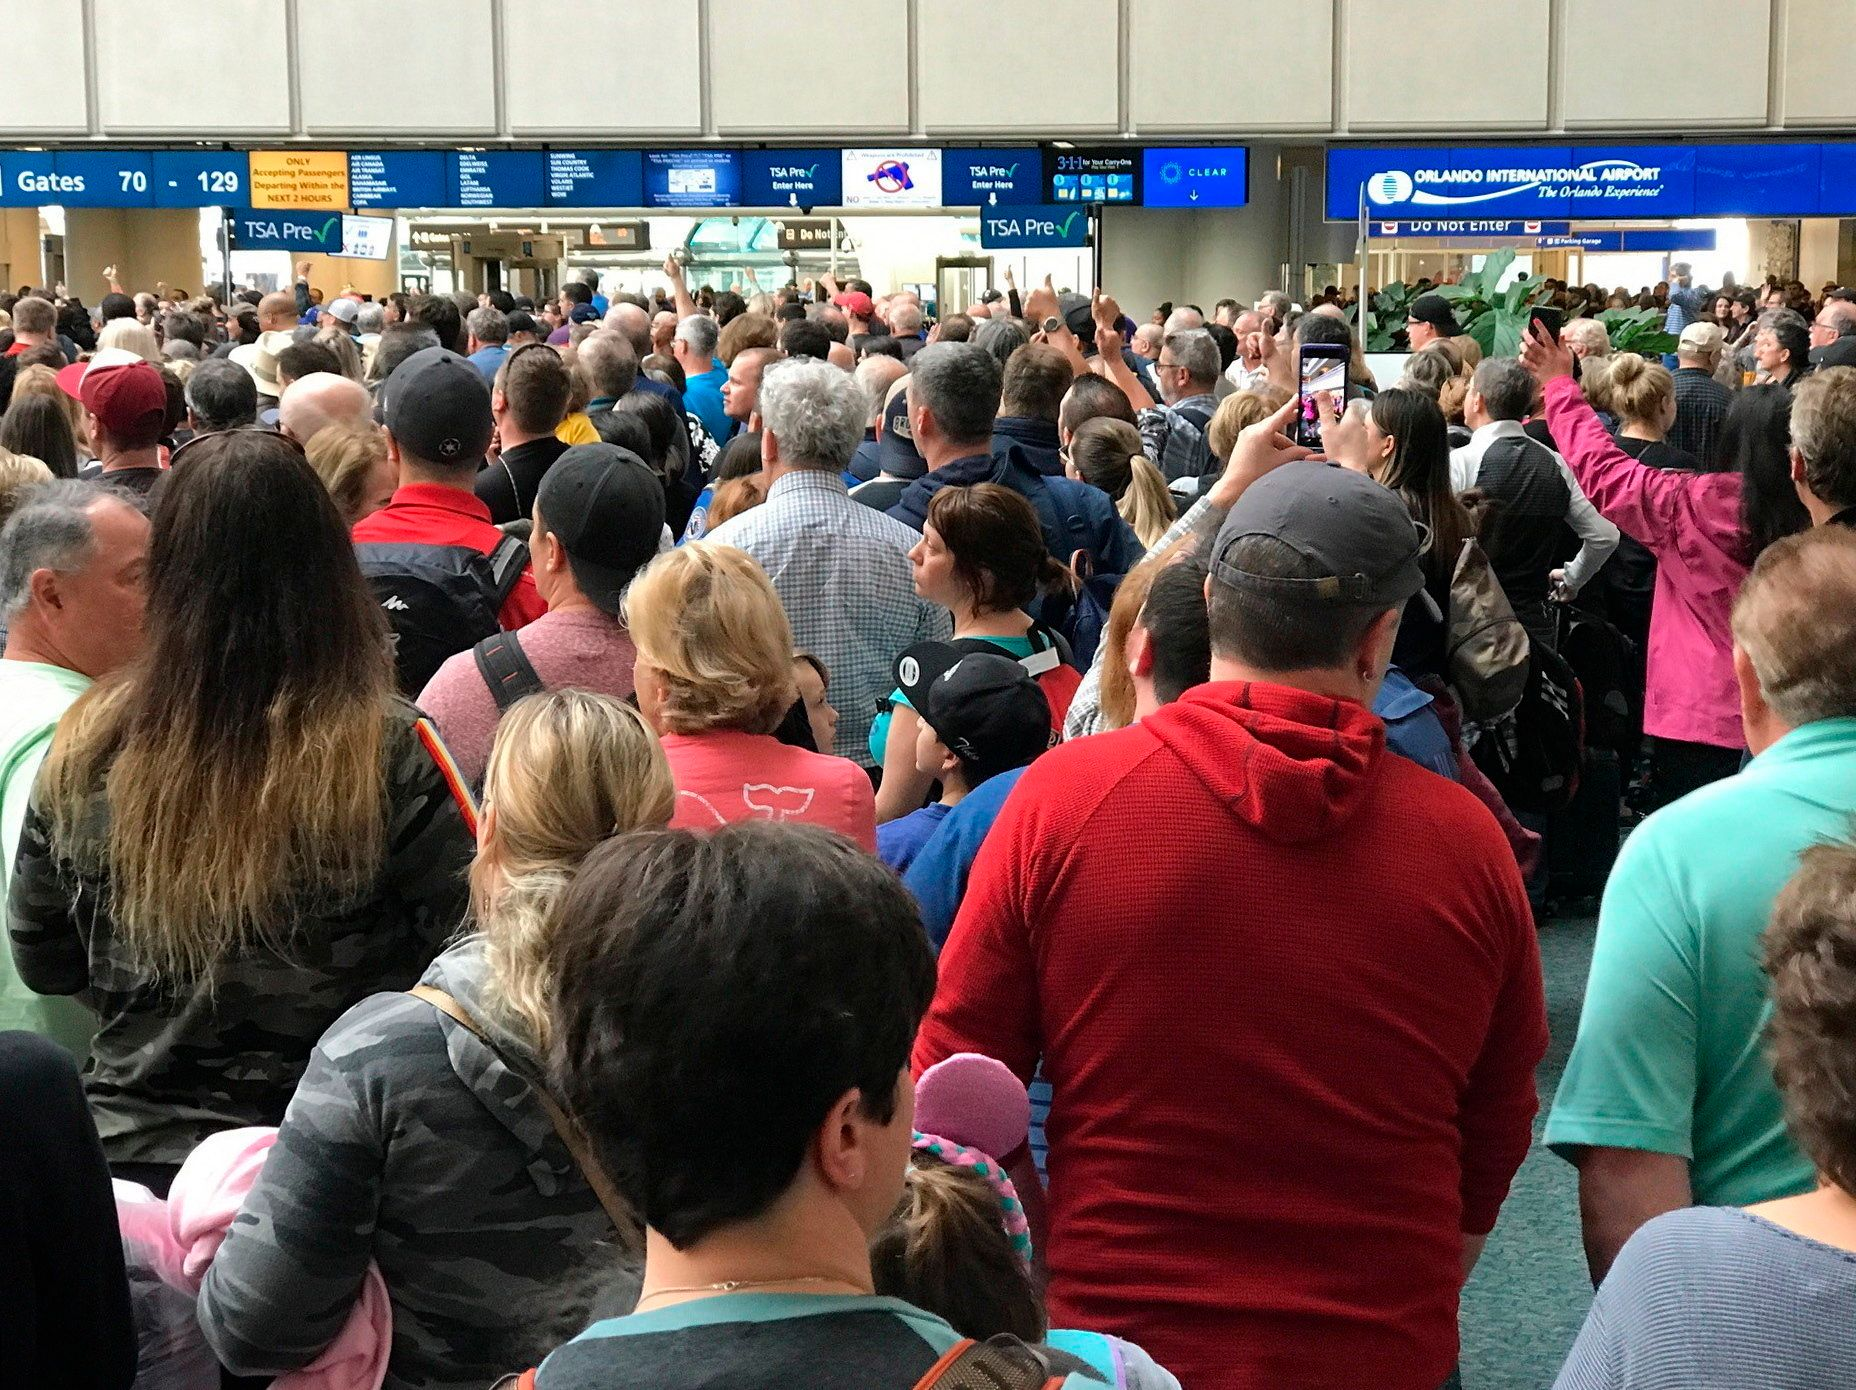 "<p> People wait to get through security at the Orlando International Airport following a security incident on Saturday, Feb. 2, 2019. Passengers on shuttles to gates at Florida's busiest airport had to be brought back for a second screening, bringing security checkpoints to a temporary standstill. A spokeswoman for Orlando International Airport told television station WKMG on Saturday that the passengers were returned in ""an abundance of caution"" after some passengers may have gotten through the checkpoints without being screened property. (Jonathan Hayward/The Canadian Press via AP) </p>"